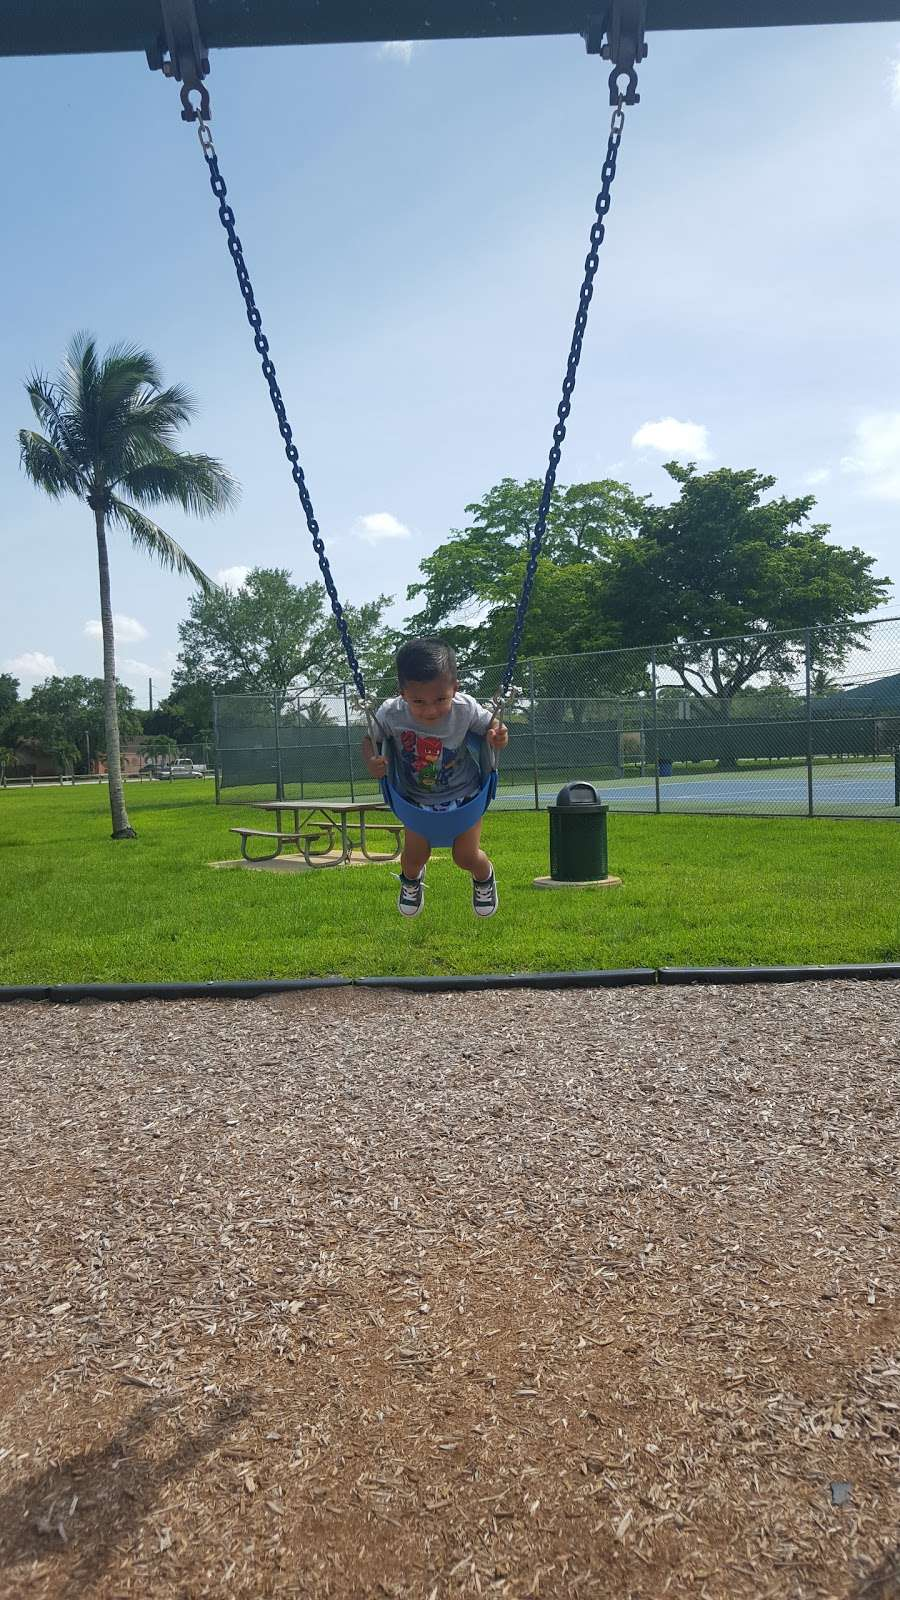 Ted Ferone Park - park  | Photo 9 of 10 | Address: 5090 SW 106th Ave, Cooper City, FL 33328, USA | Phone: (954) 434-4300